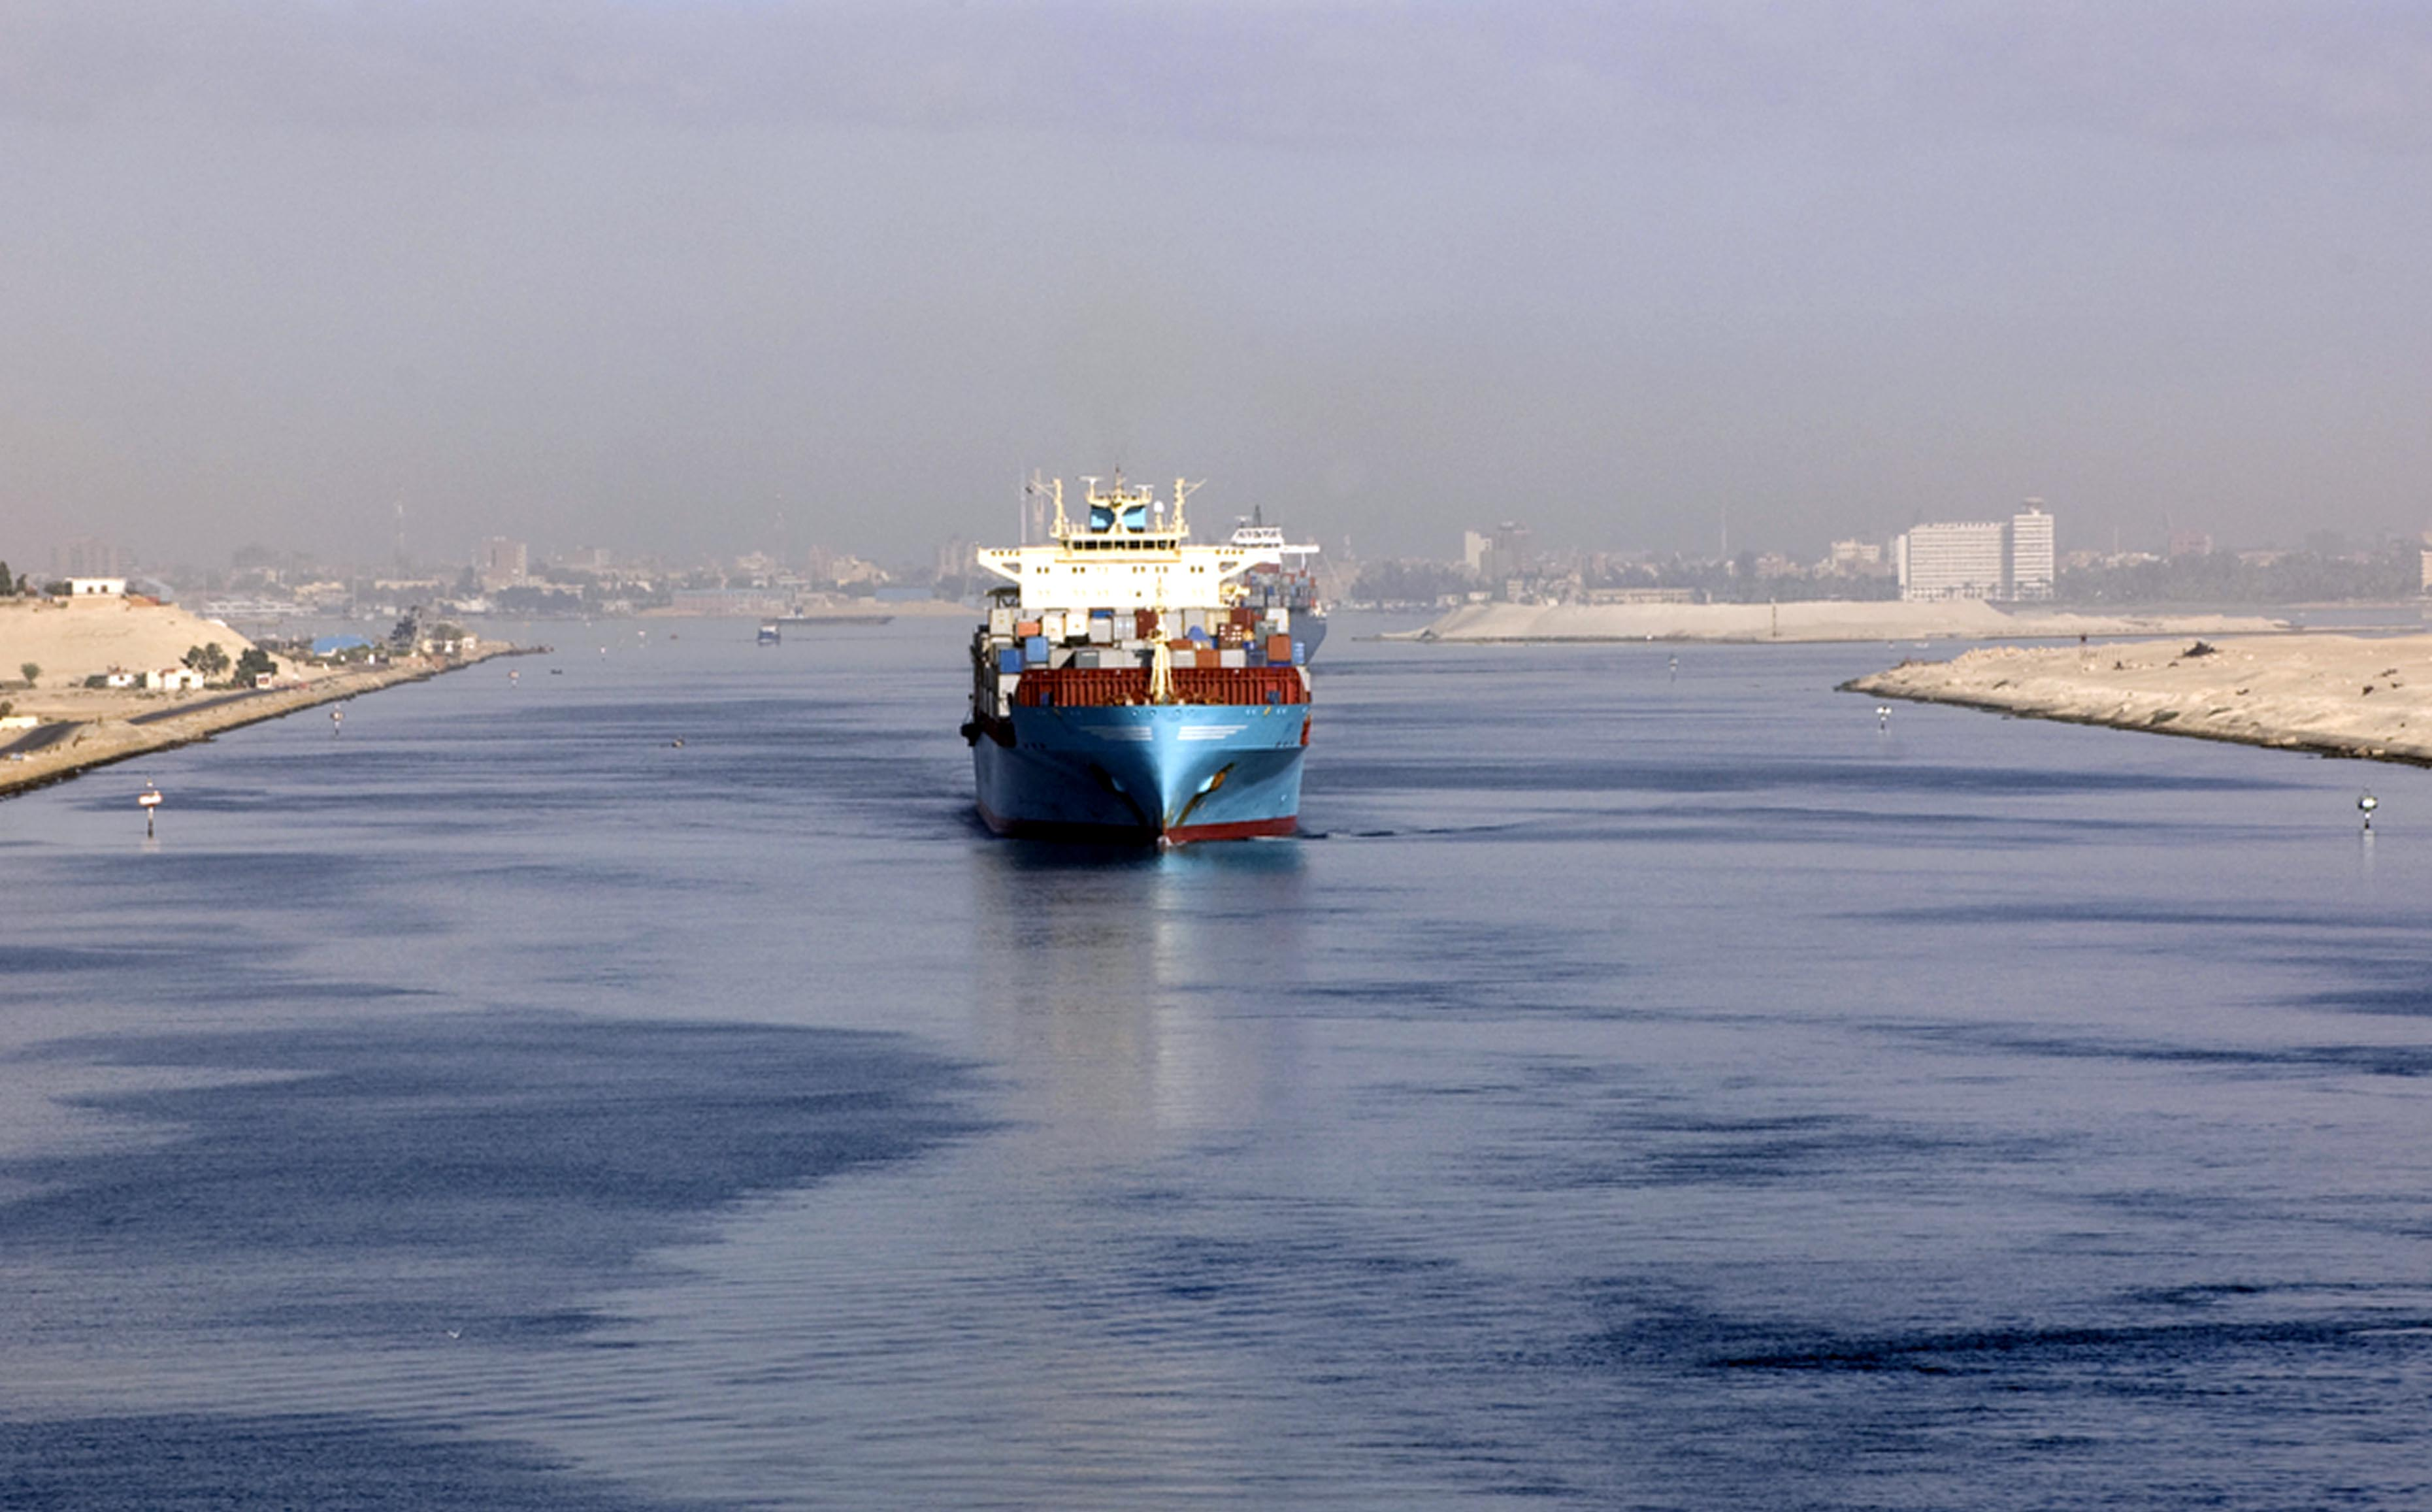 Egypt's New Suez Canal saw the passage of three container ships on its first day of trials. Source: Shutterstock